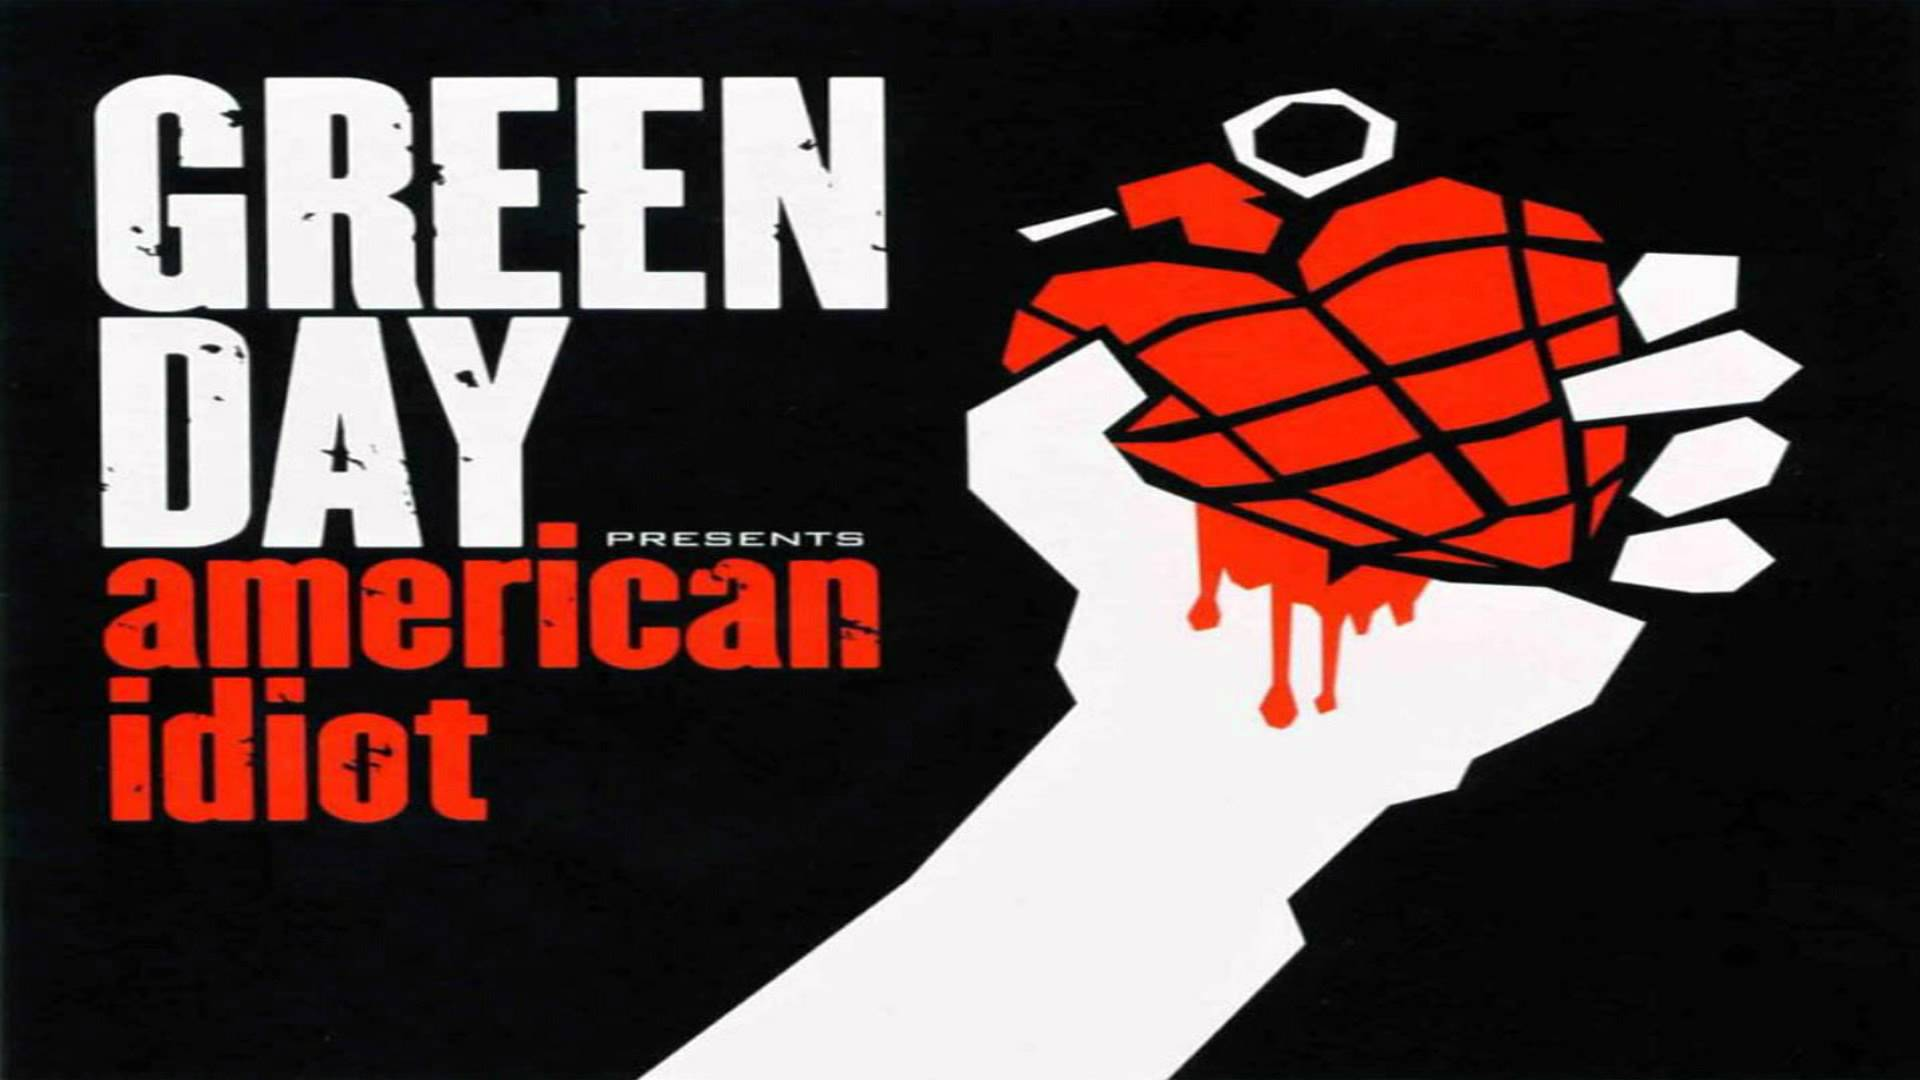 1920x1080 Green Day - American Idiot [Bass Backing Track] - YouTube